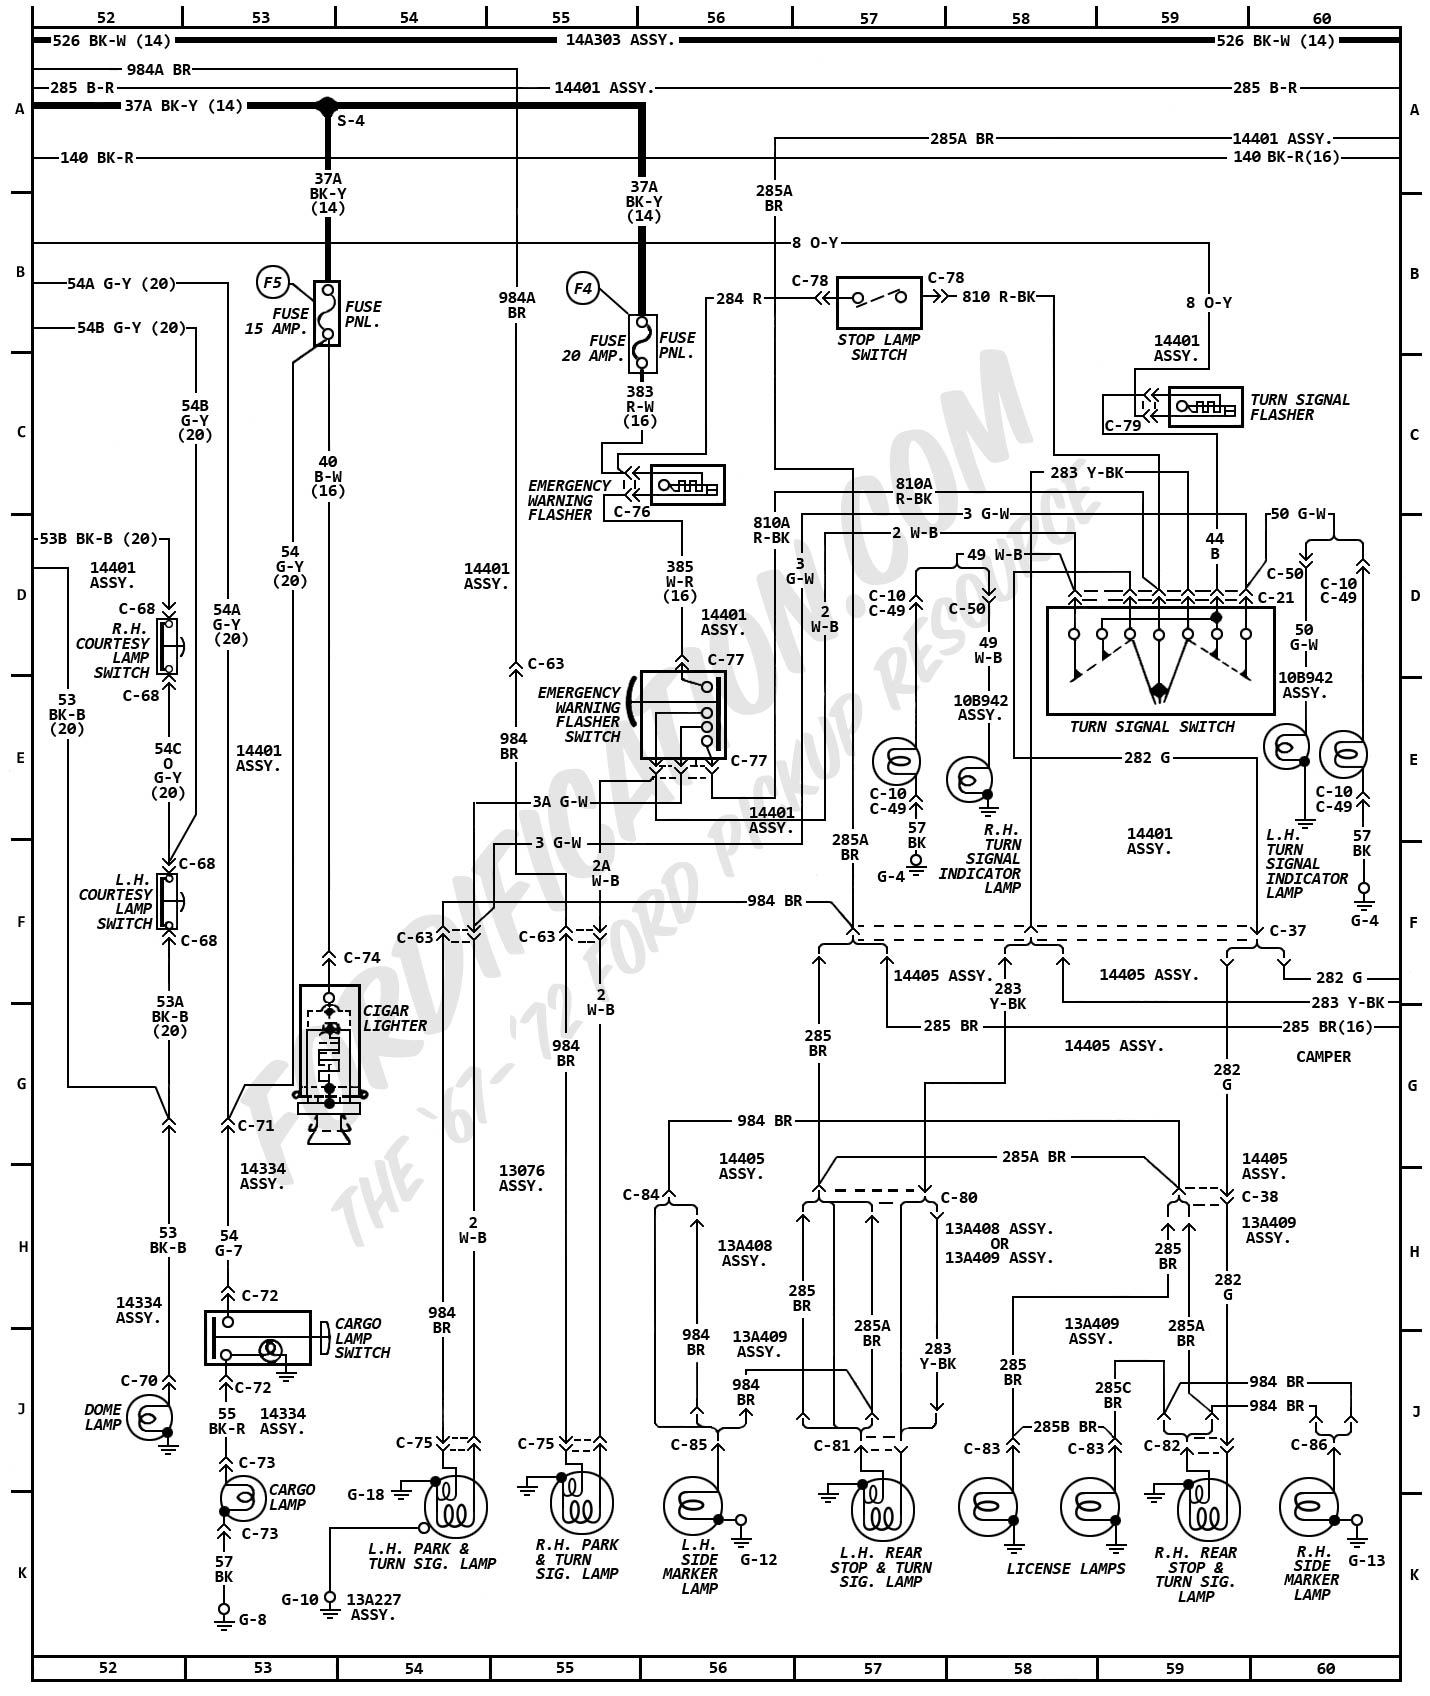 1972 Mustang Gauge Wiring Diagram Library 66 Nova Voltage Regulator Ford Truck Diagrams Fordification Com Rh 1968 F250 1969